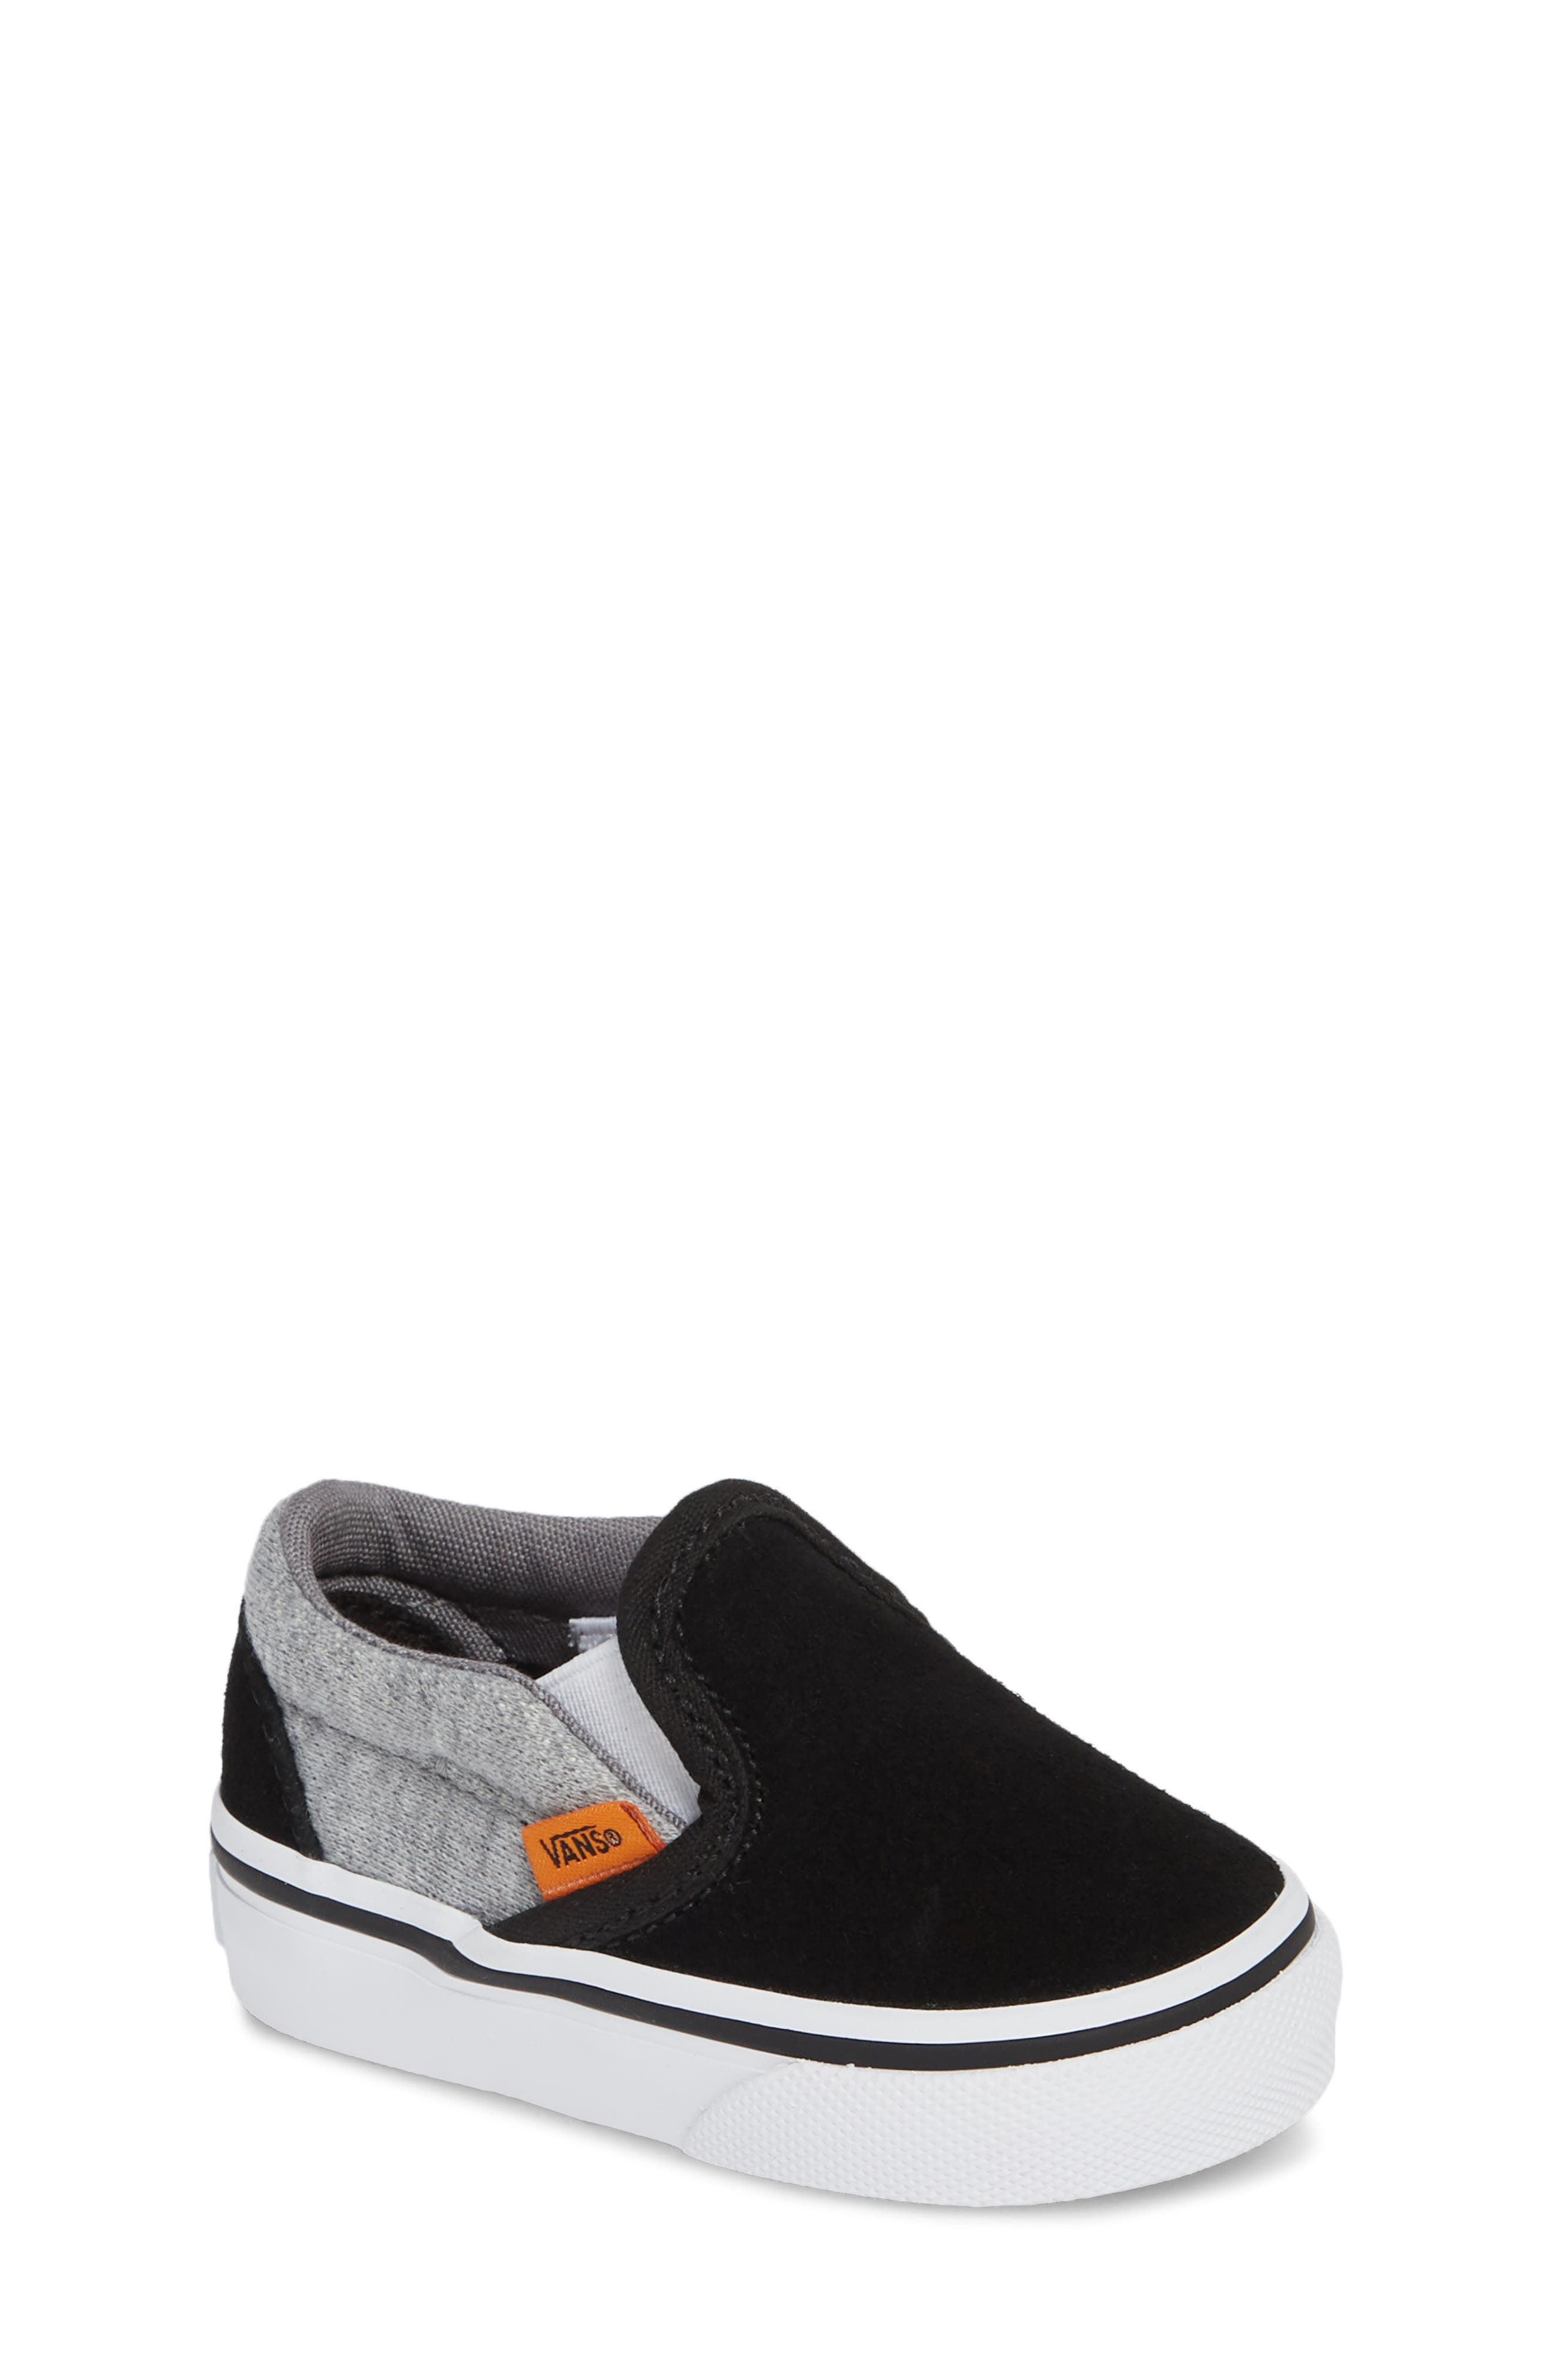 'Classic' Slip-On,                             Main thumbnail 1, color,                             SUEDE AND JERSEY GRAY/ BLACK